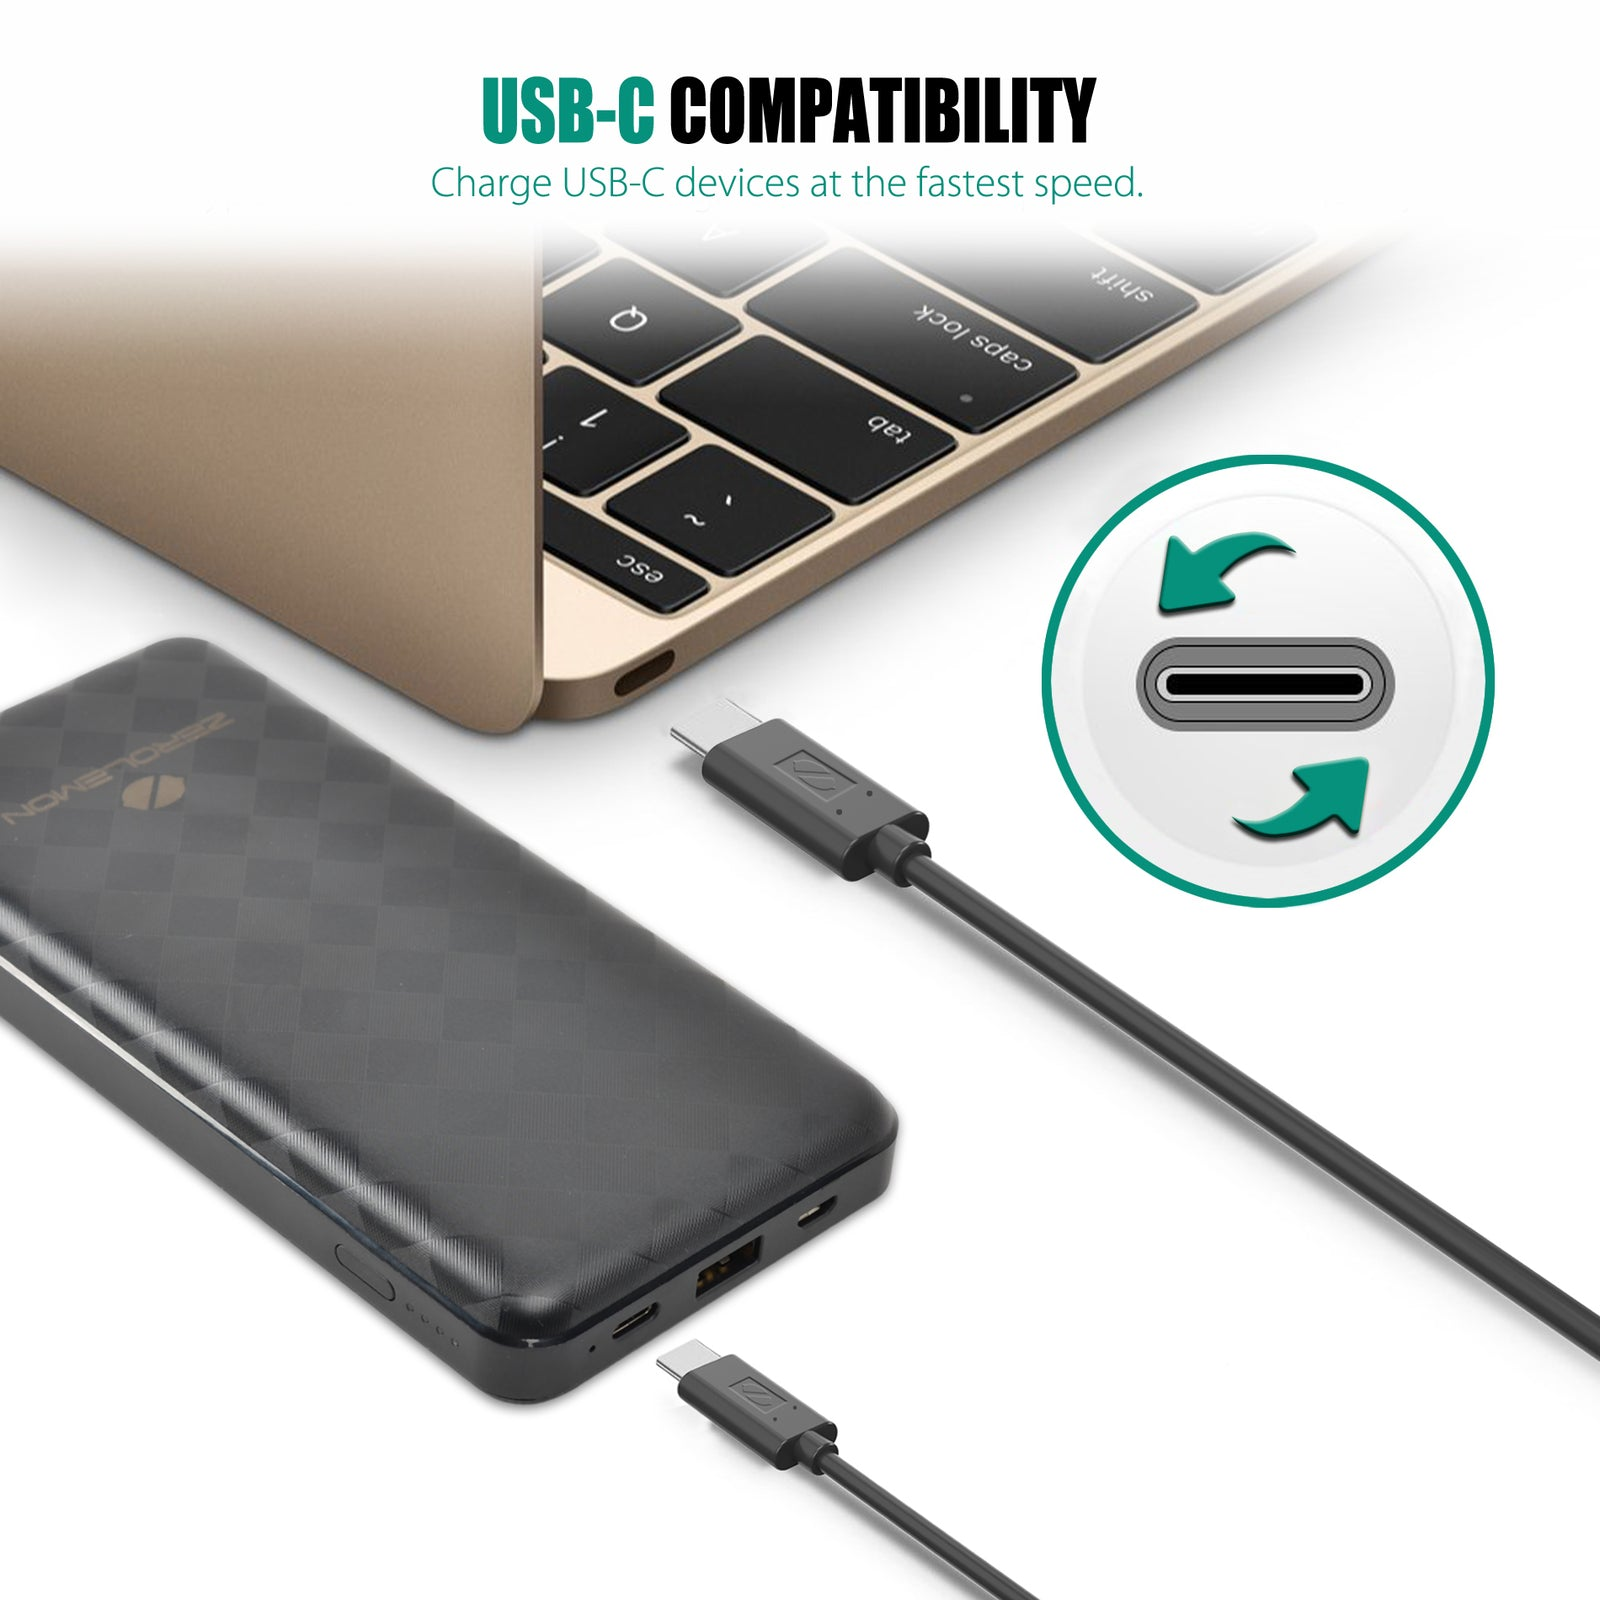 JuiceBox 20100mAh 45W PD USB Type C Portable Charger [Shipping to US Only]